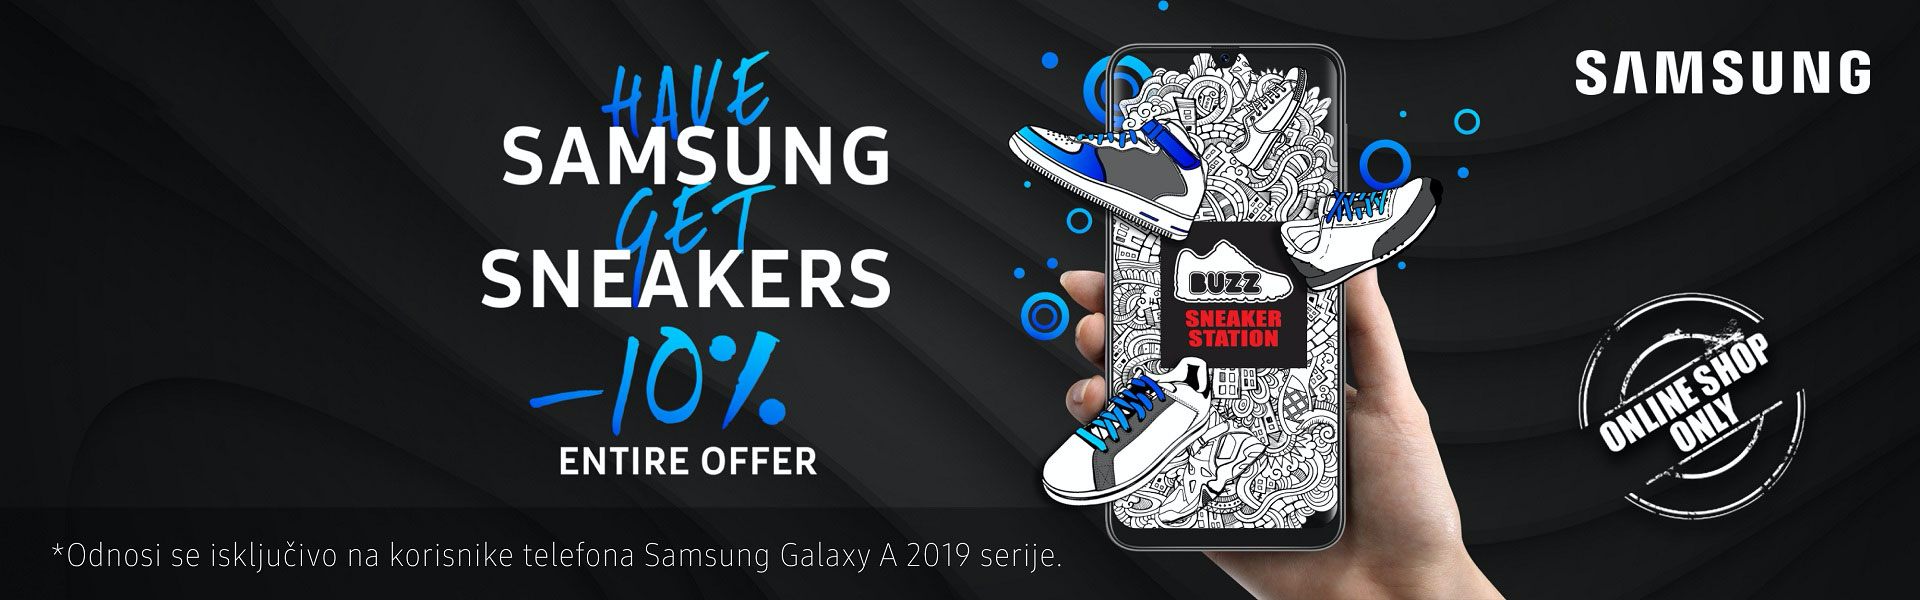 have-samsung-get-sneakers